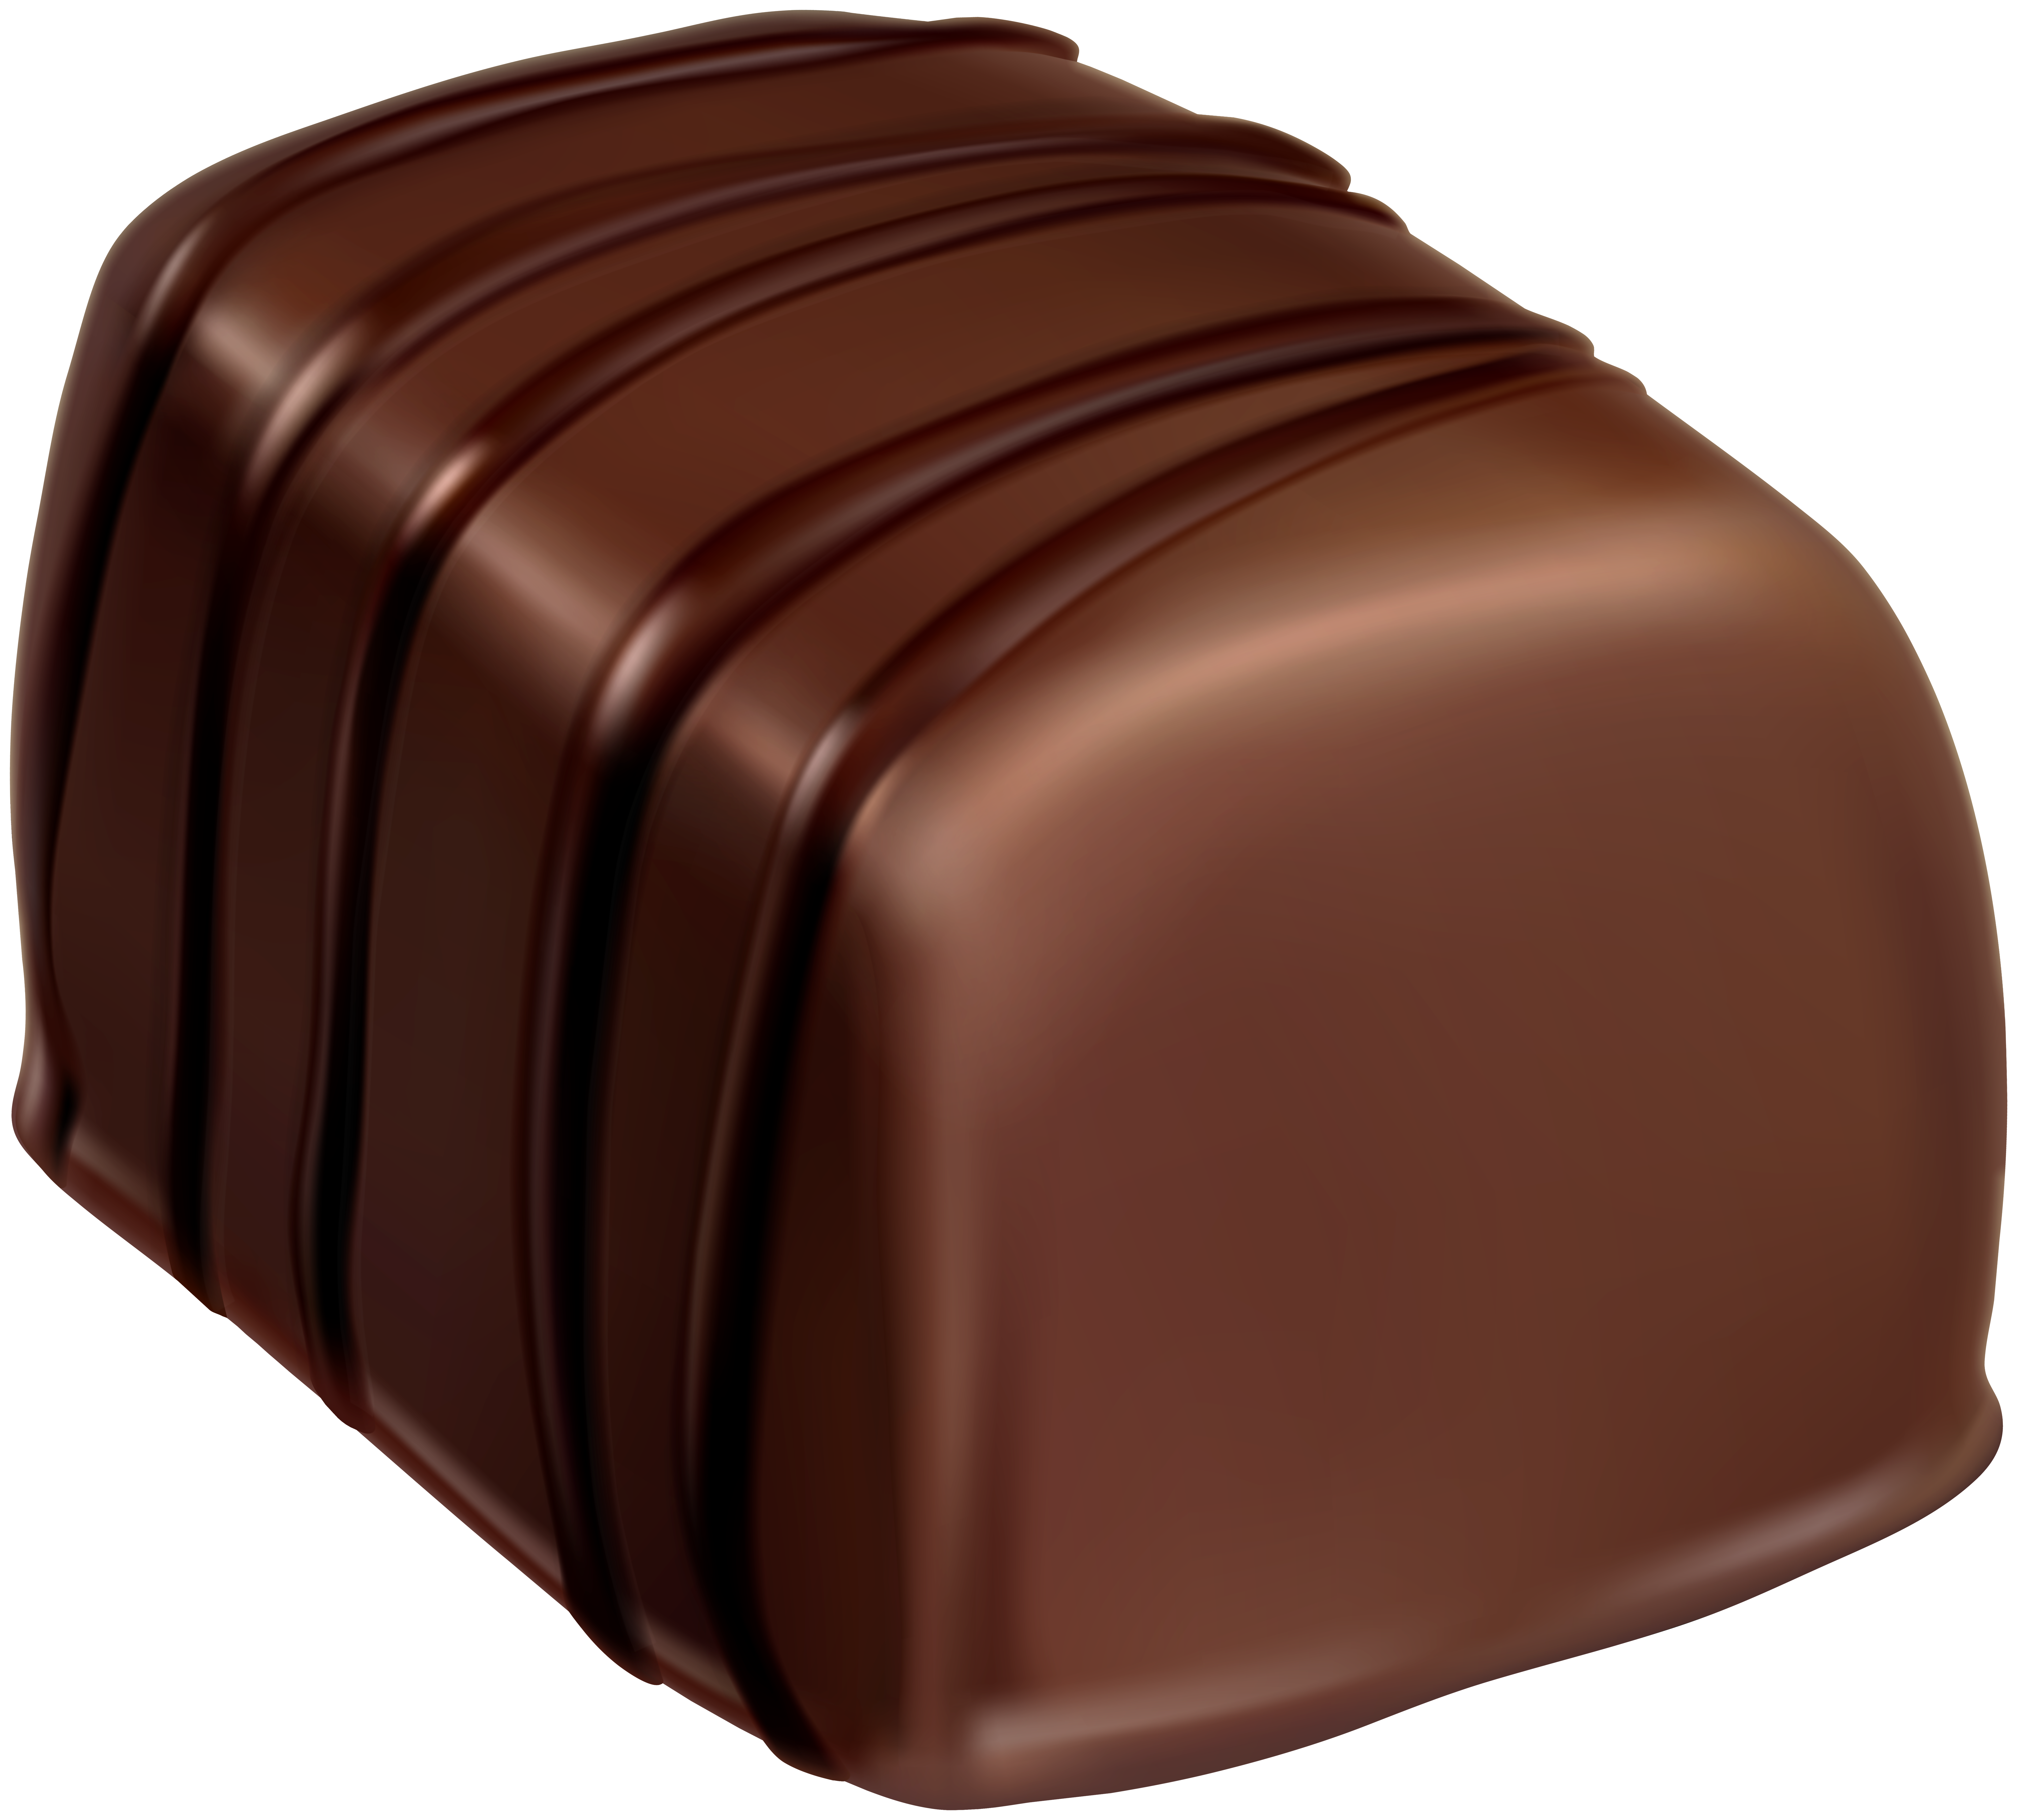 Chocolate Candy PNG Clip Art Image.